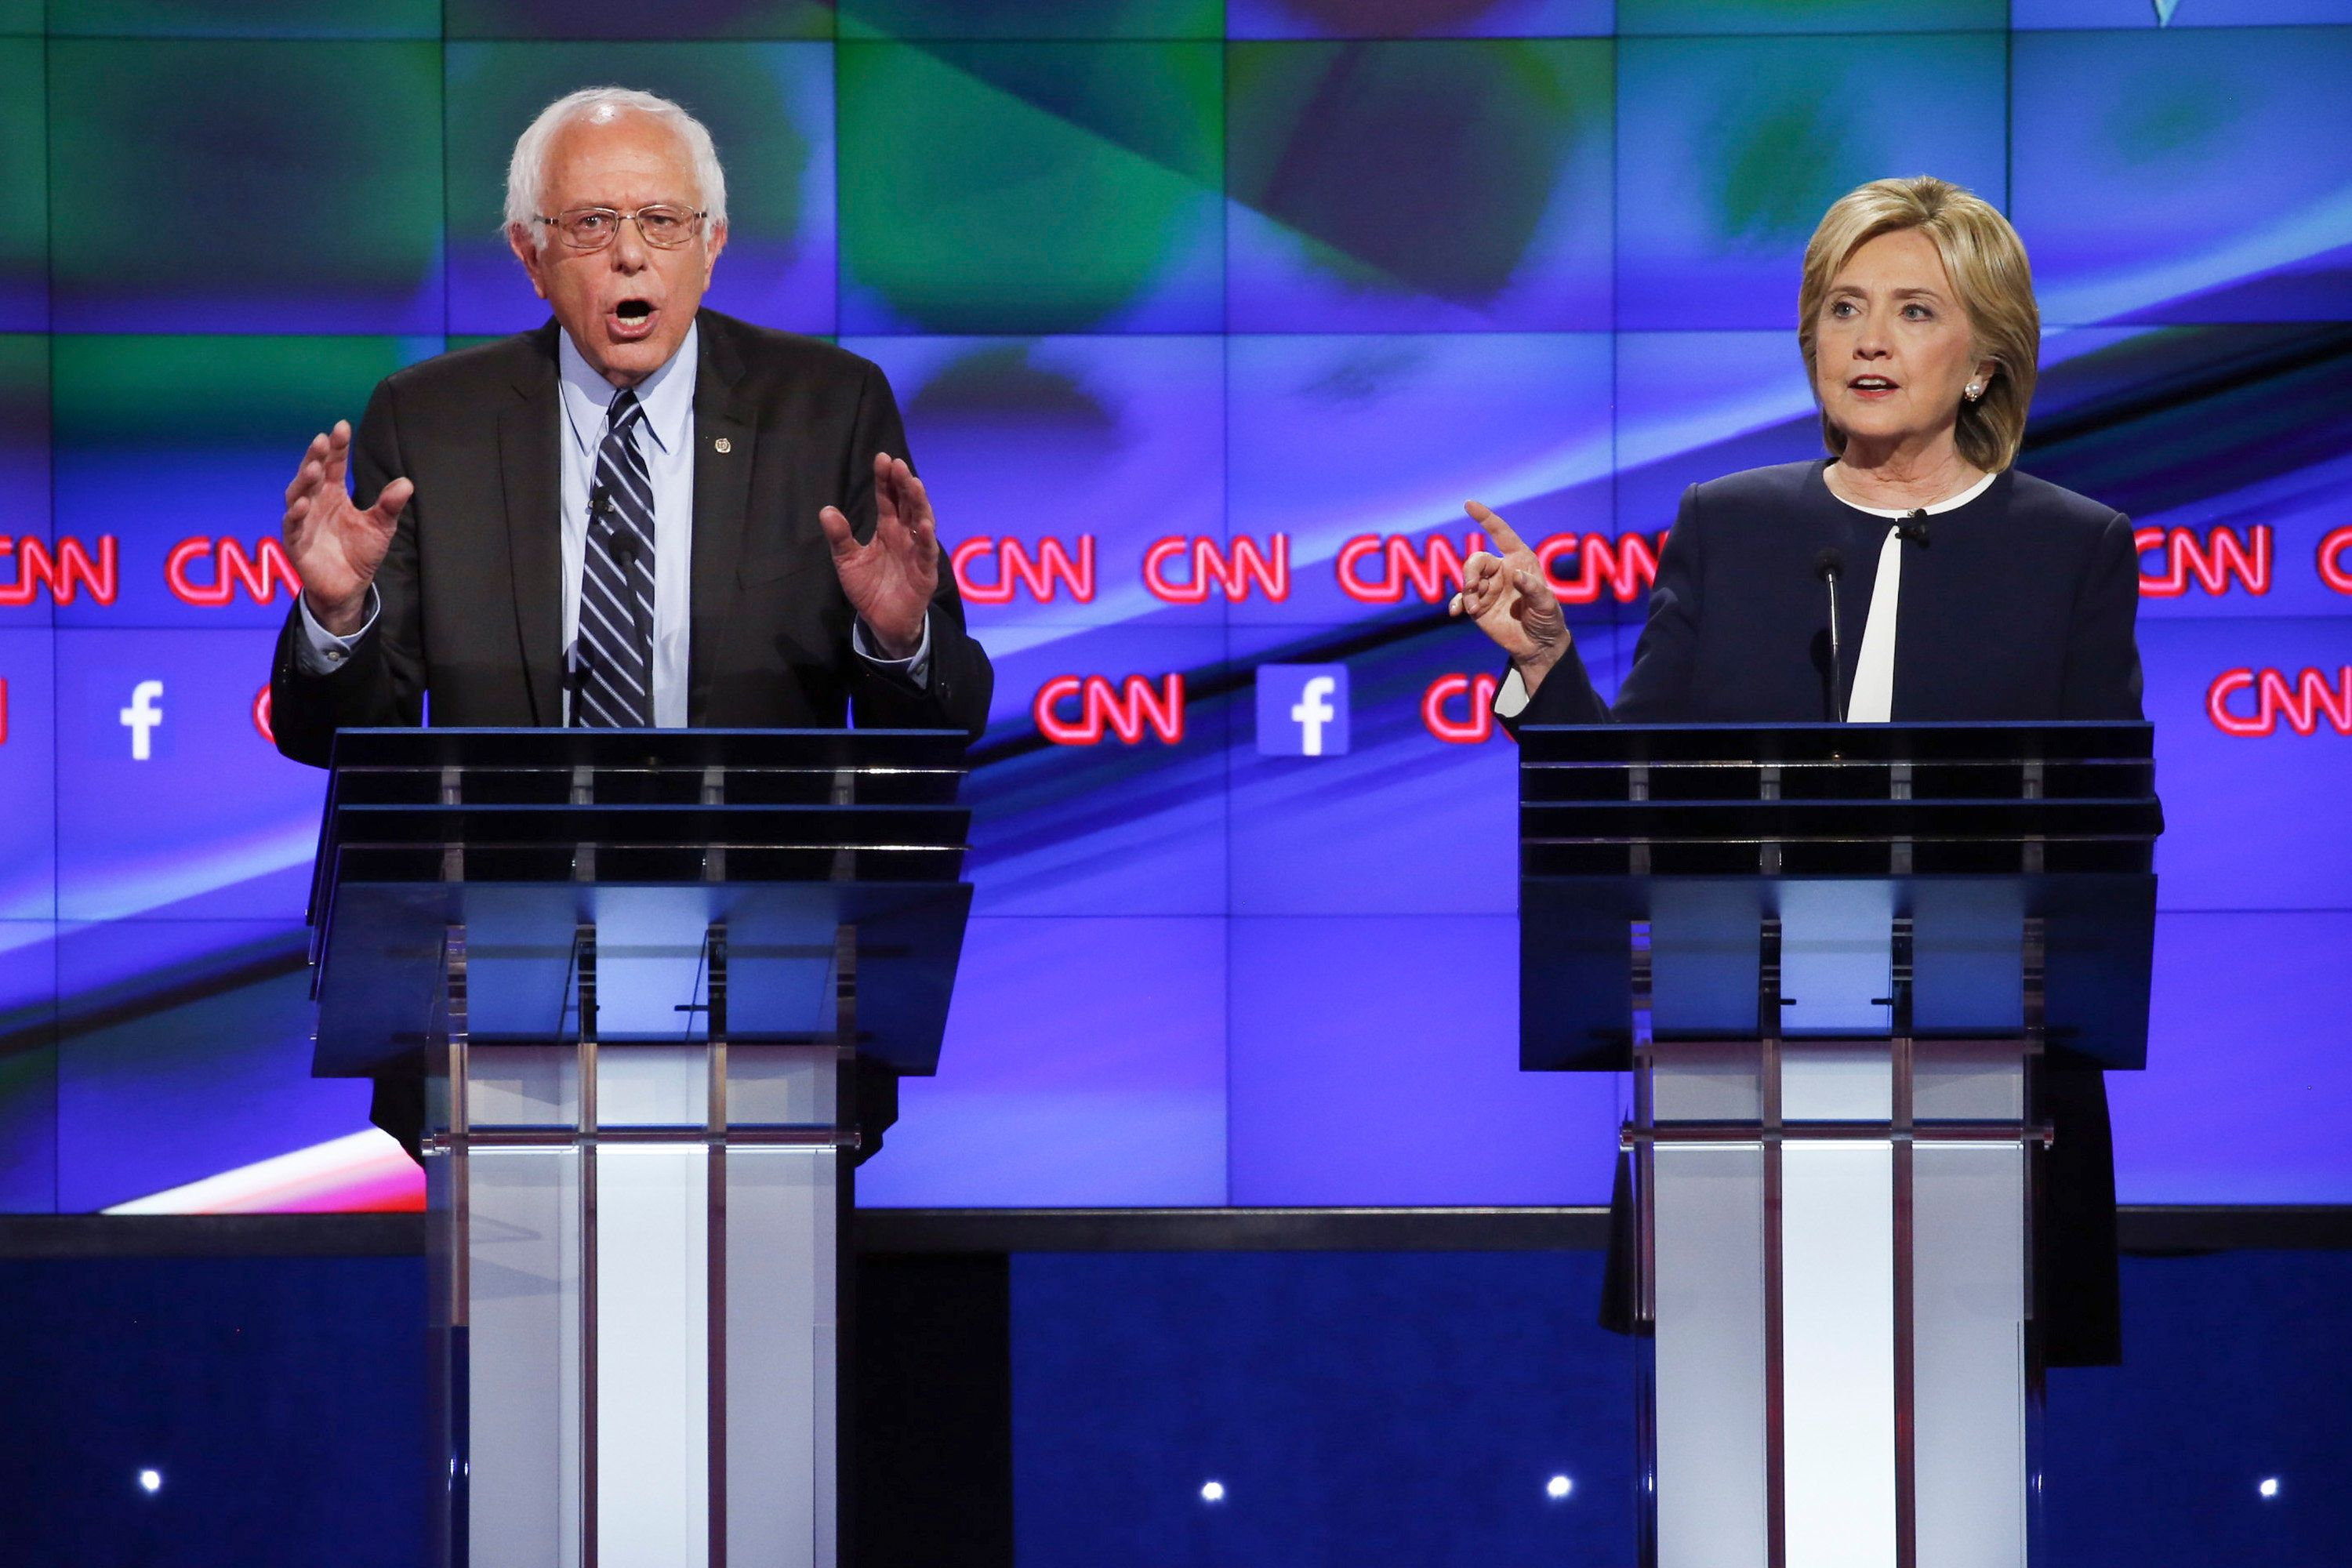 Senator Bernie Sanders, an independent from Vermont, left, and Hillary Clinton, former U.S. secretary of state, participate in the first Democratic presidential debate at the Wynn Las Vegas resort and casino in Las Vegas, Nevada, U.S., on Tuesday, Oct. 13, 2015. While tonight's first Democratic presidential debate will probably lack the name-calling and sharp jabs of the Republican face-offs, there's still potential for strong disagreements between the party's leading contenders. Photographer: Josh Haner/Pool via Bloomberg